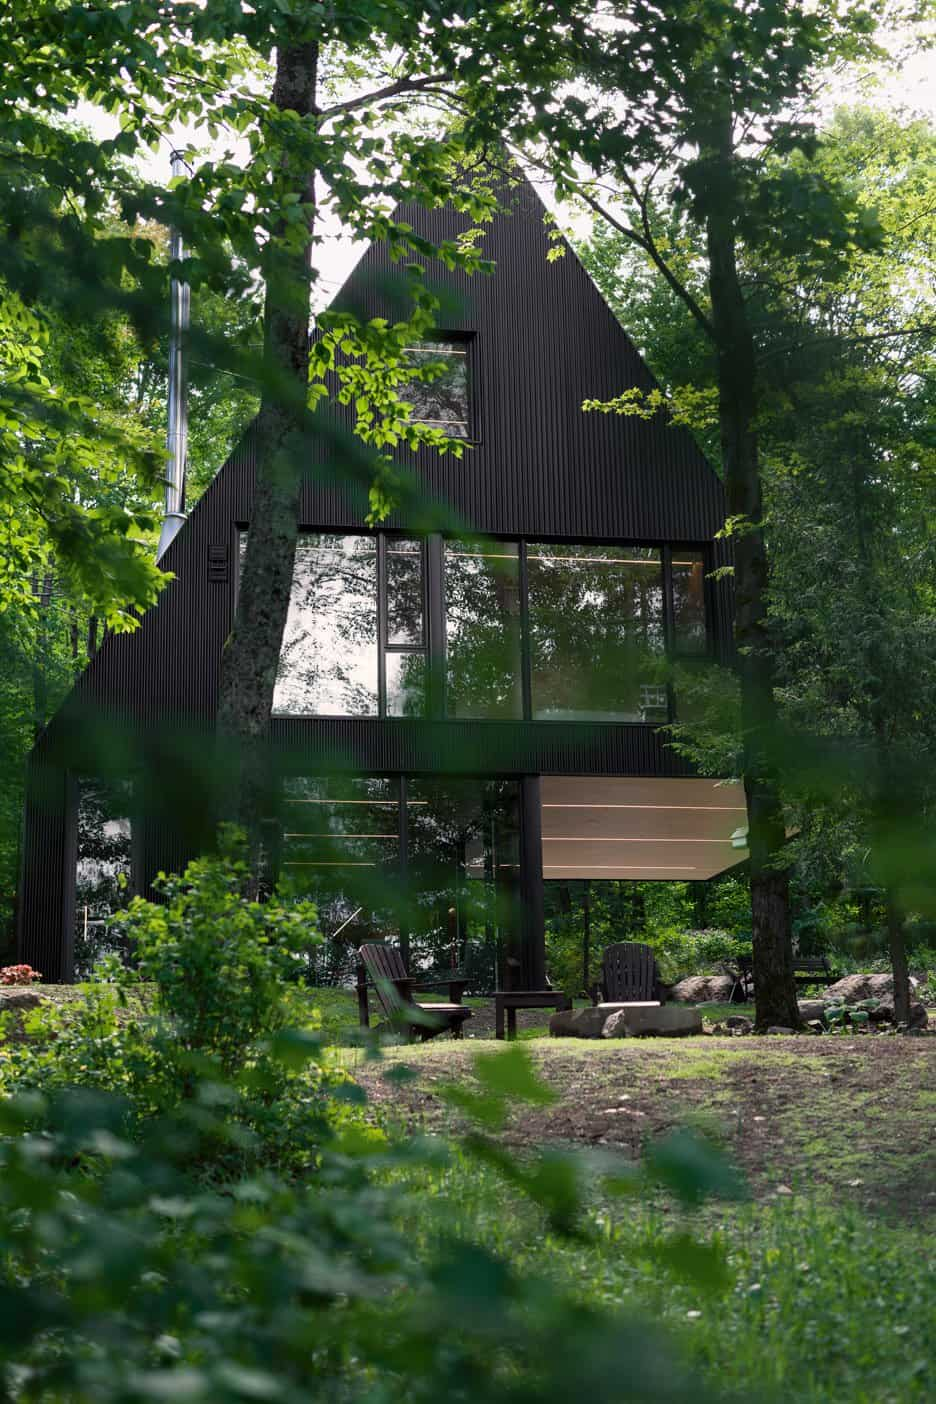 impeccable black cottage in quebec forest by jean verville rh homesthetics net black forest cottages germany black forest cottages wasaga beach ontario